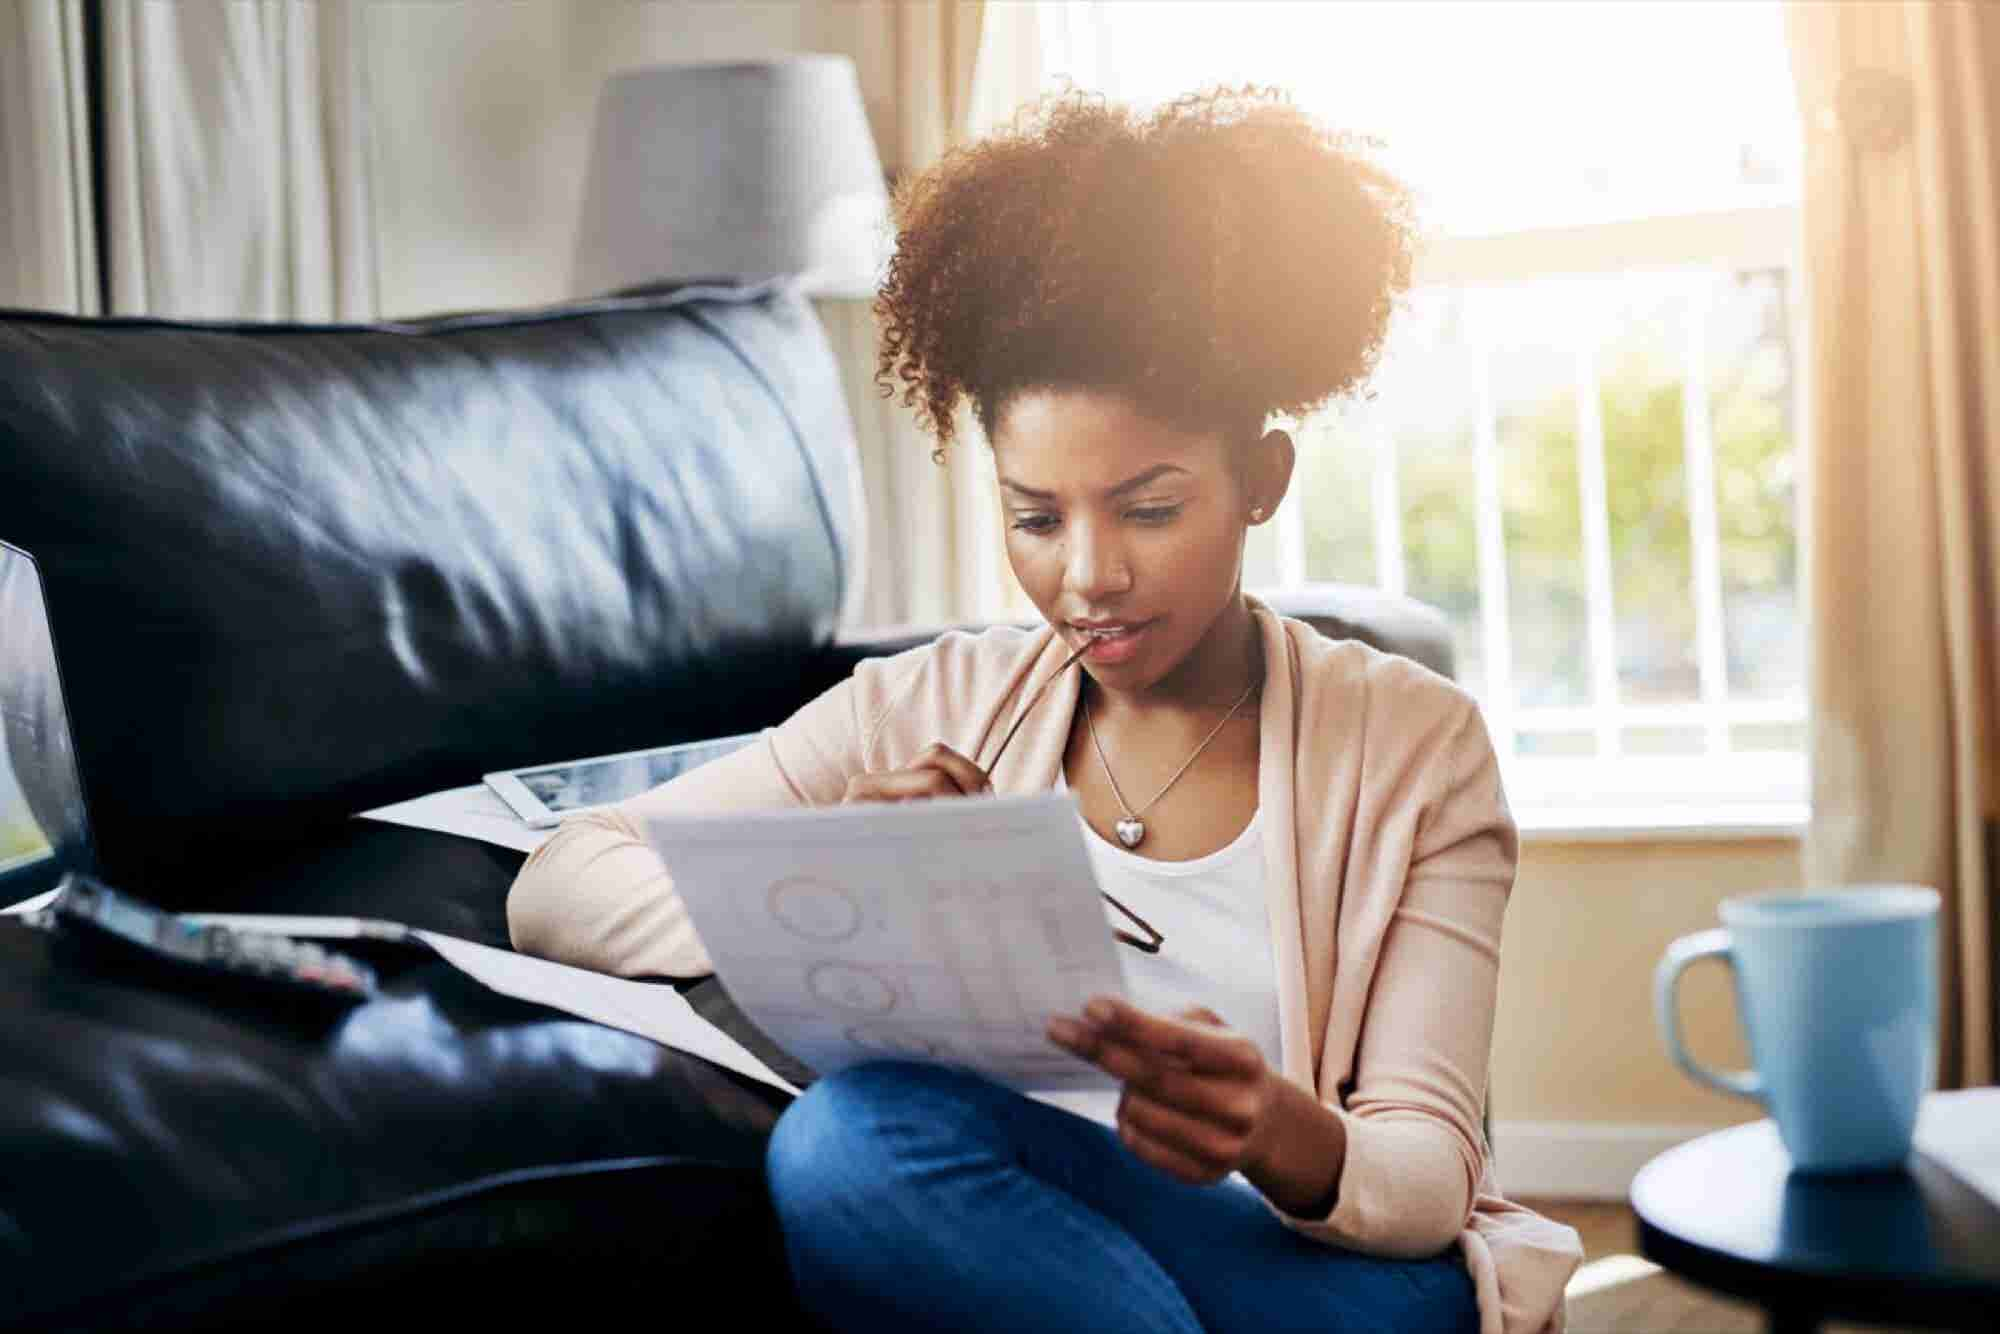 The 4 x 4 Financial Independence Plan for Entrepreneurs